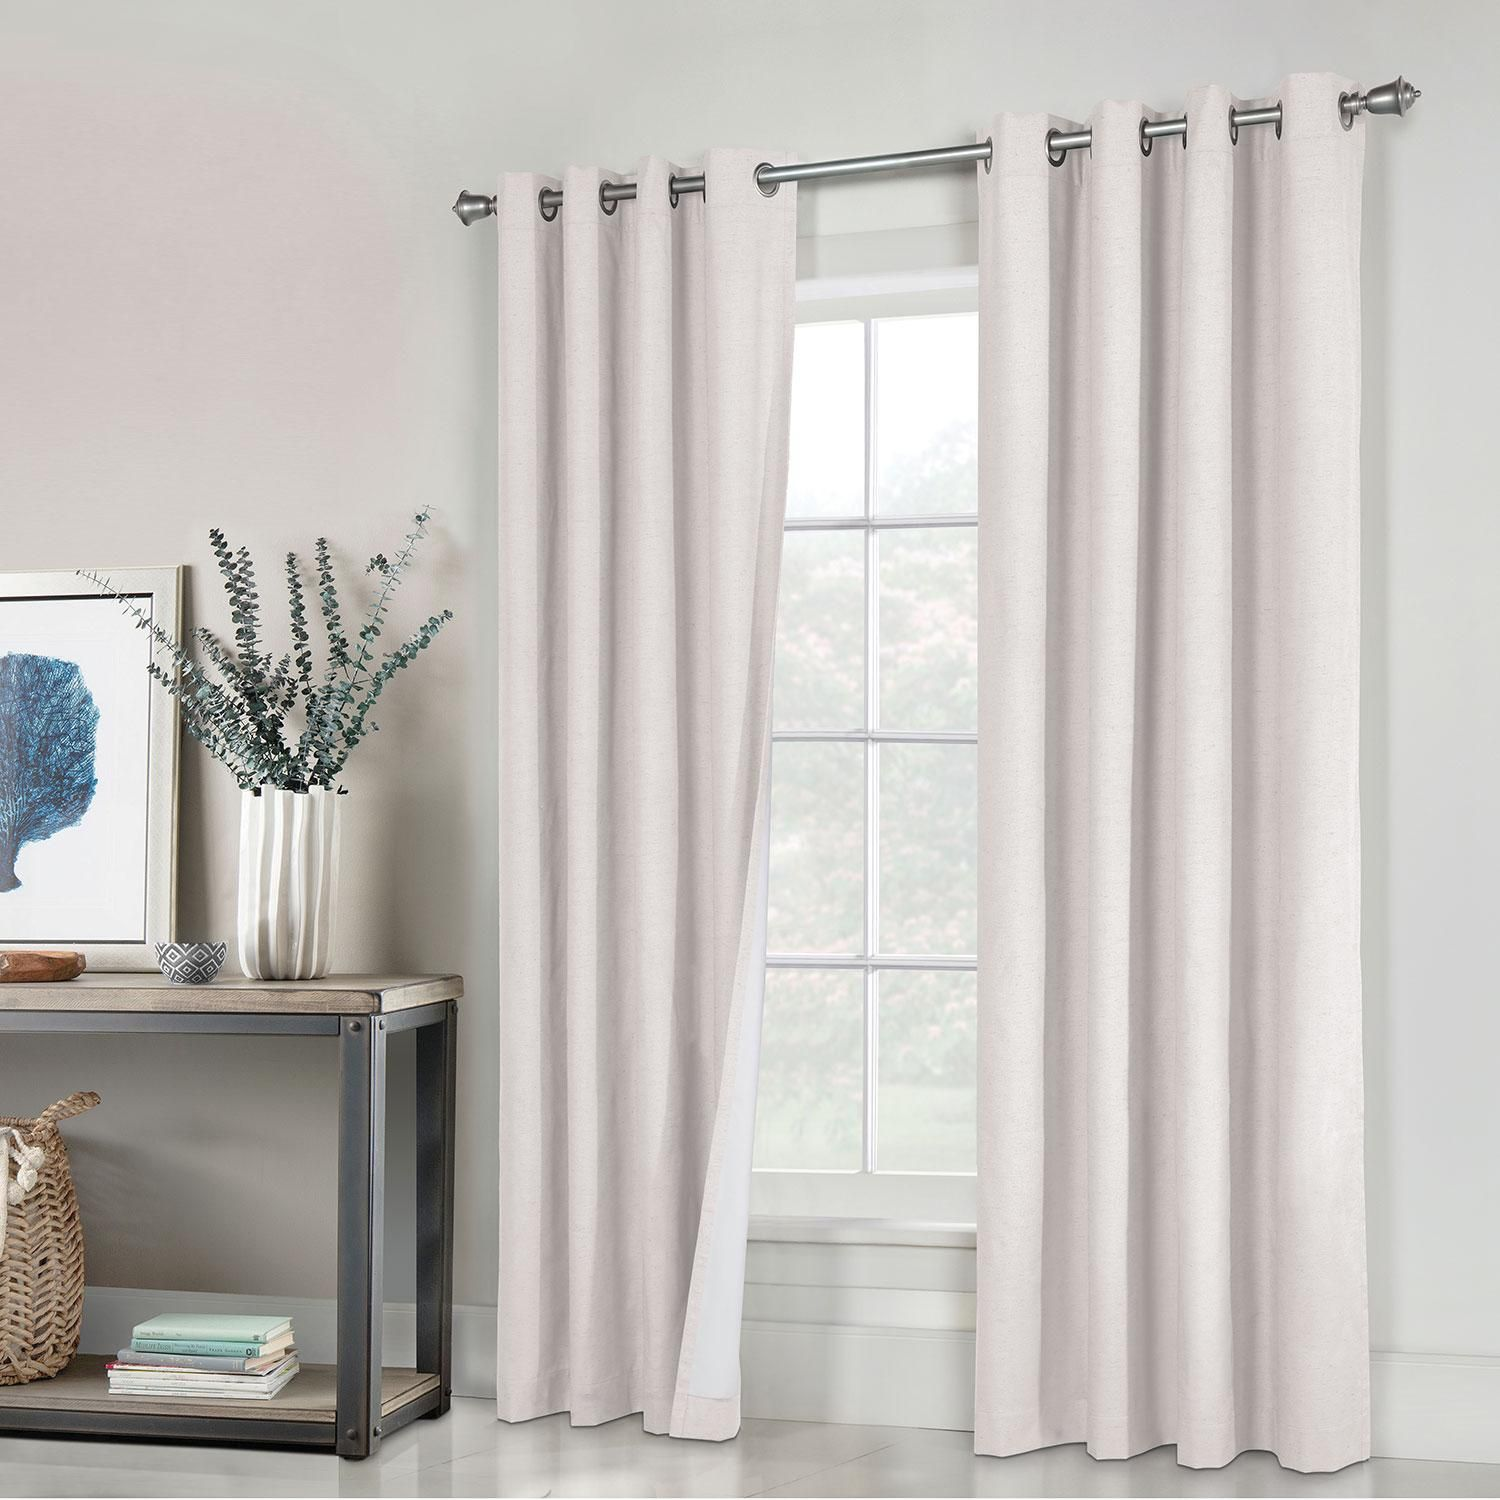 White Blackout Curtains Target Http Www Grandprixafterparty Com White Blackout Curtains Curtains Living Room Curtains